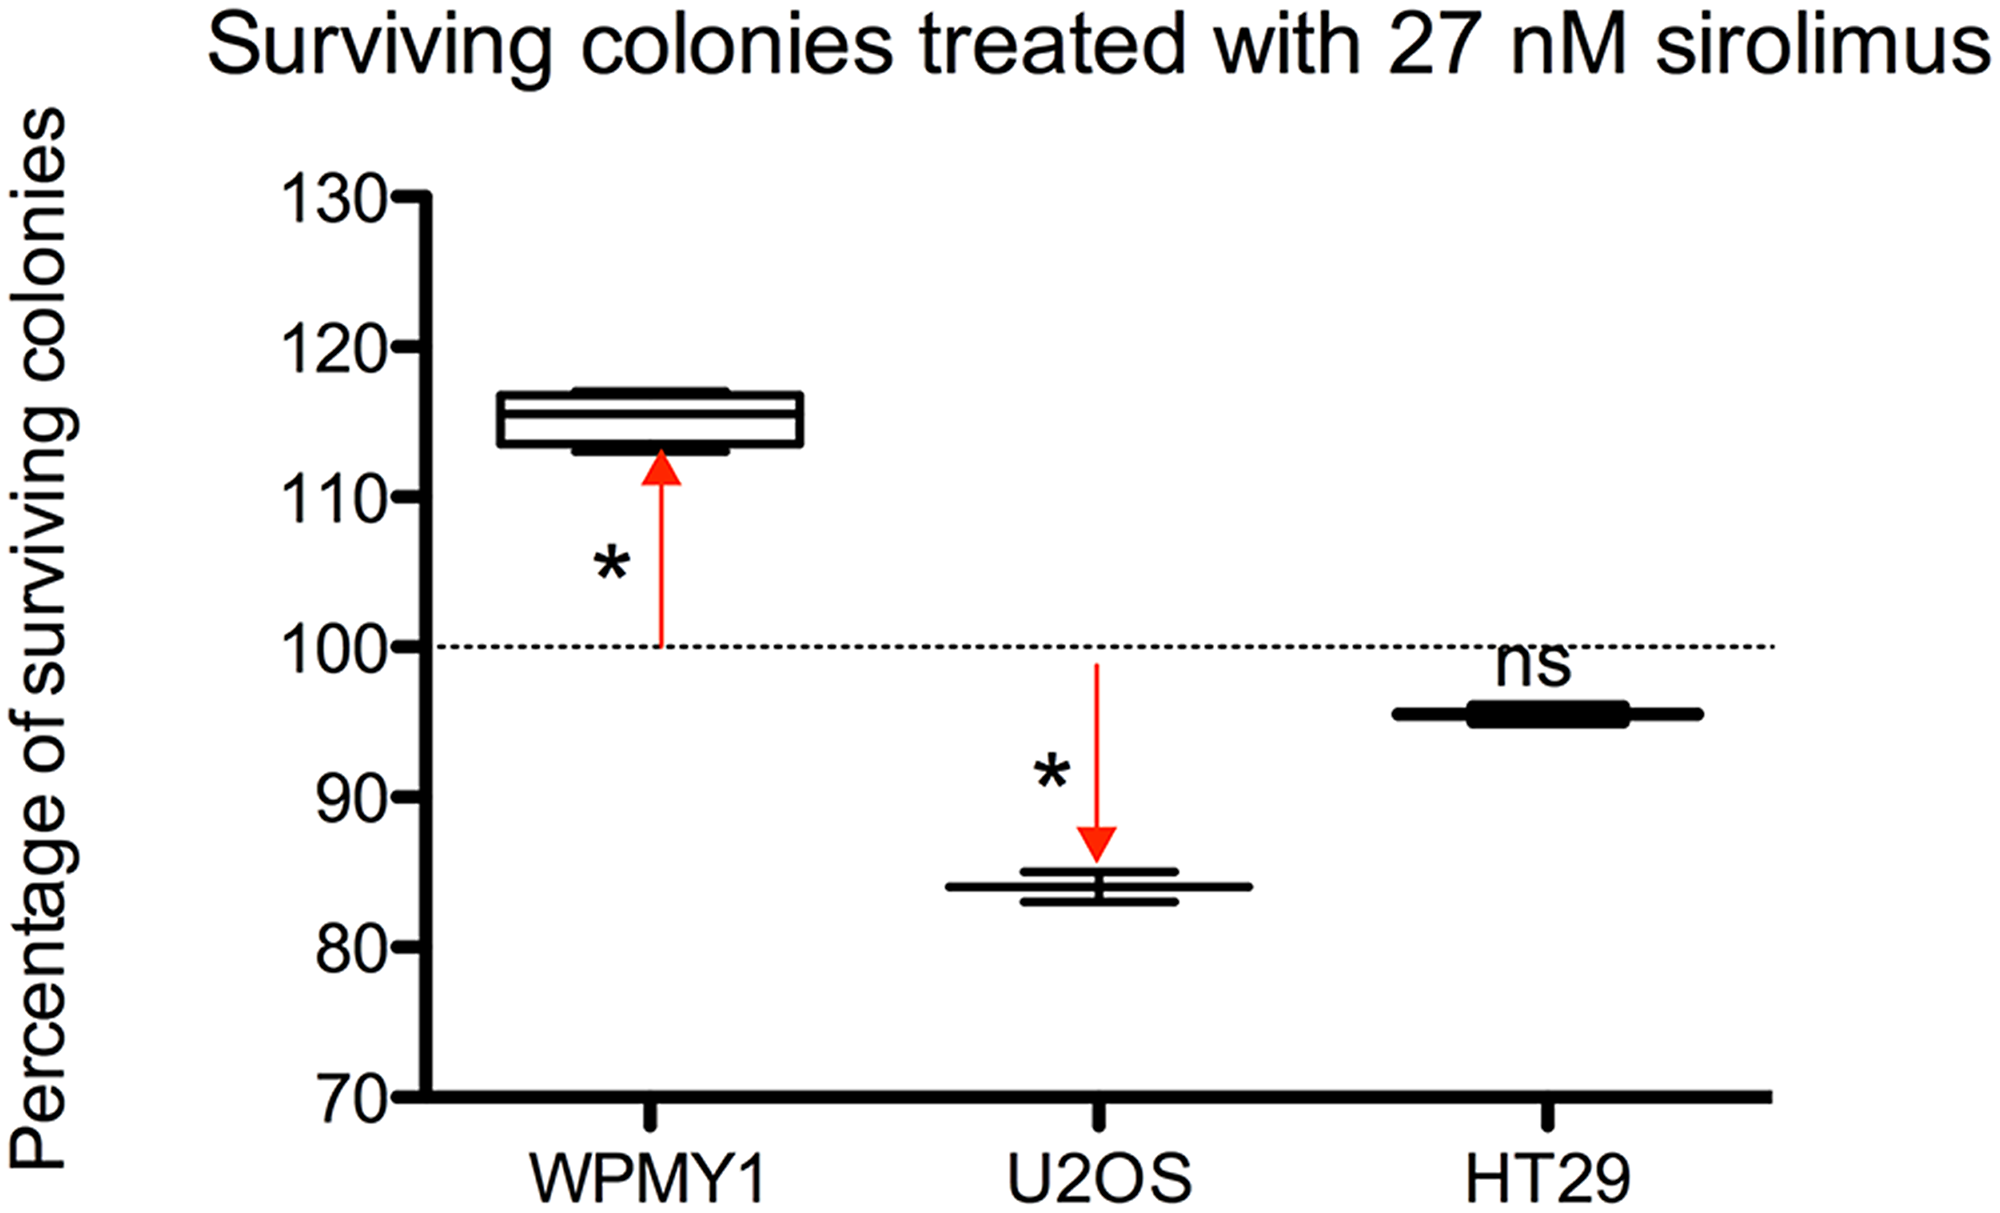 Differences among the 3 cell models of surviving colonies – expressed as a percentage-treated with 27 nM of sirolimus after 2 weeks exposure and 3 weeks recovery.